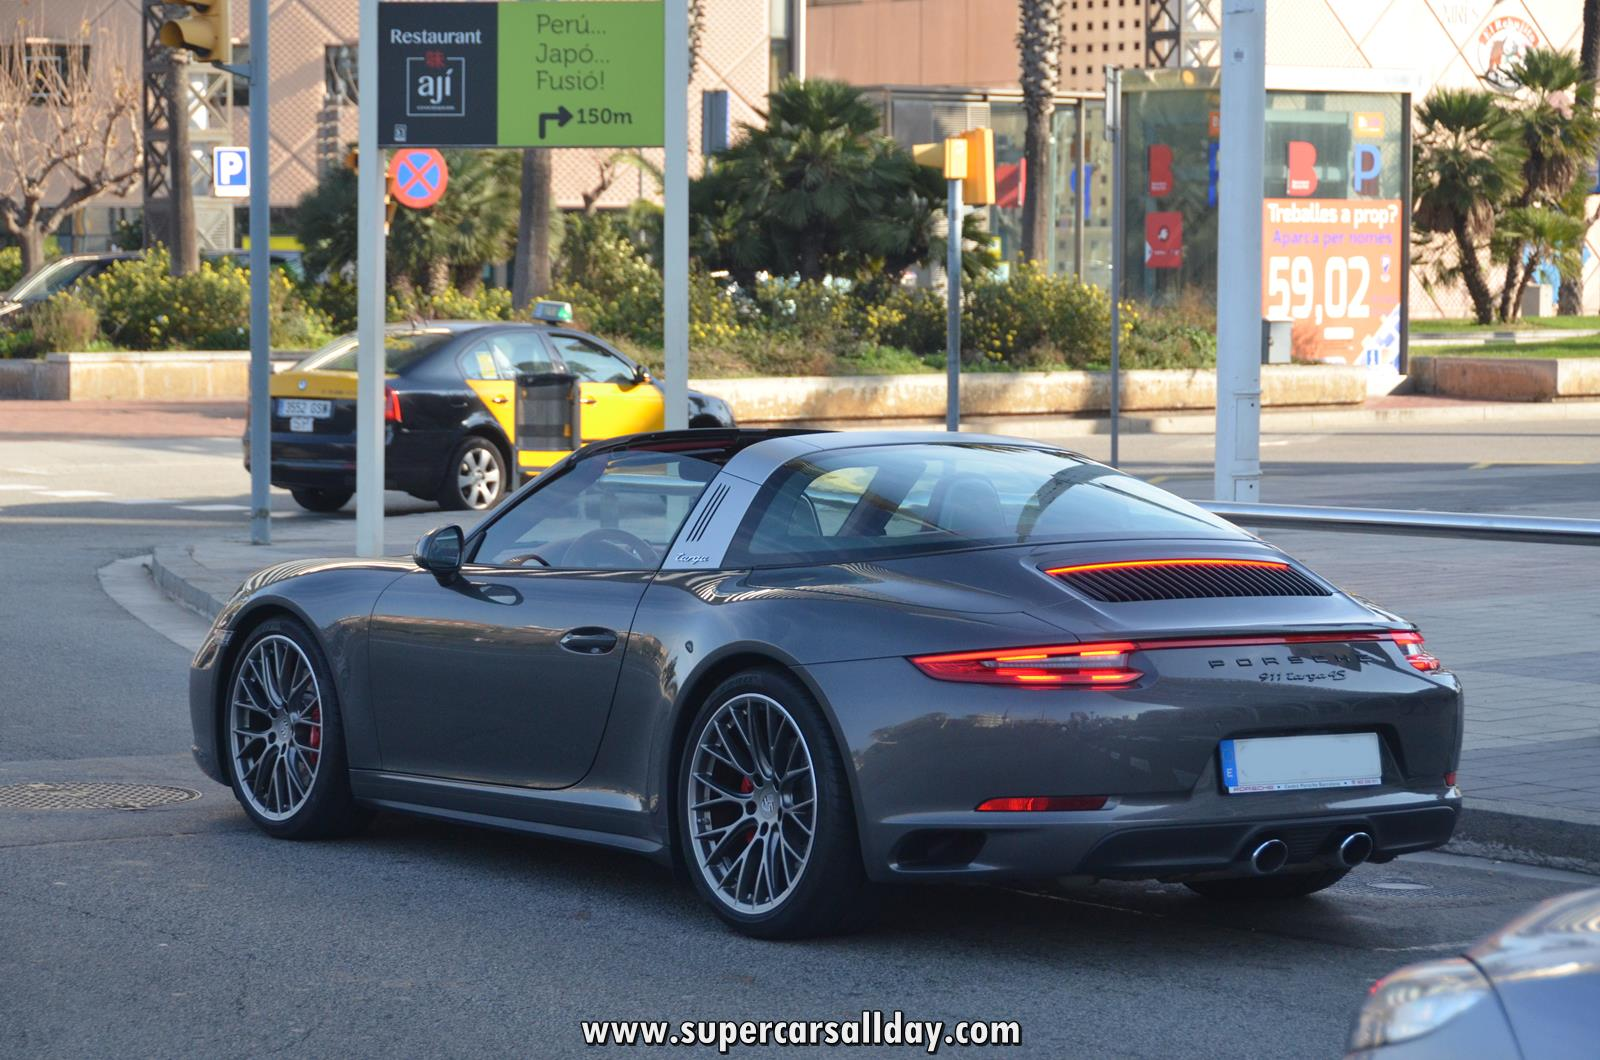 porsche 918 tail lights with 2016 Porsche 911 Targa 4s on Chevy Volt Engine Set besides Porsche 718 Cayman Porsche 718 Boxster India as well Ferrari Value Guide as well Single product together with T50156.